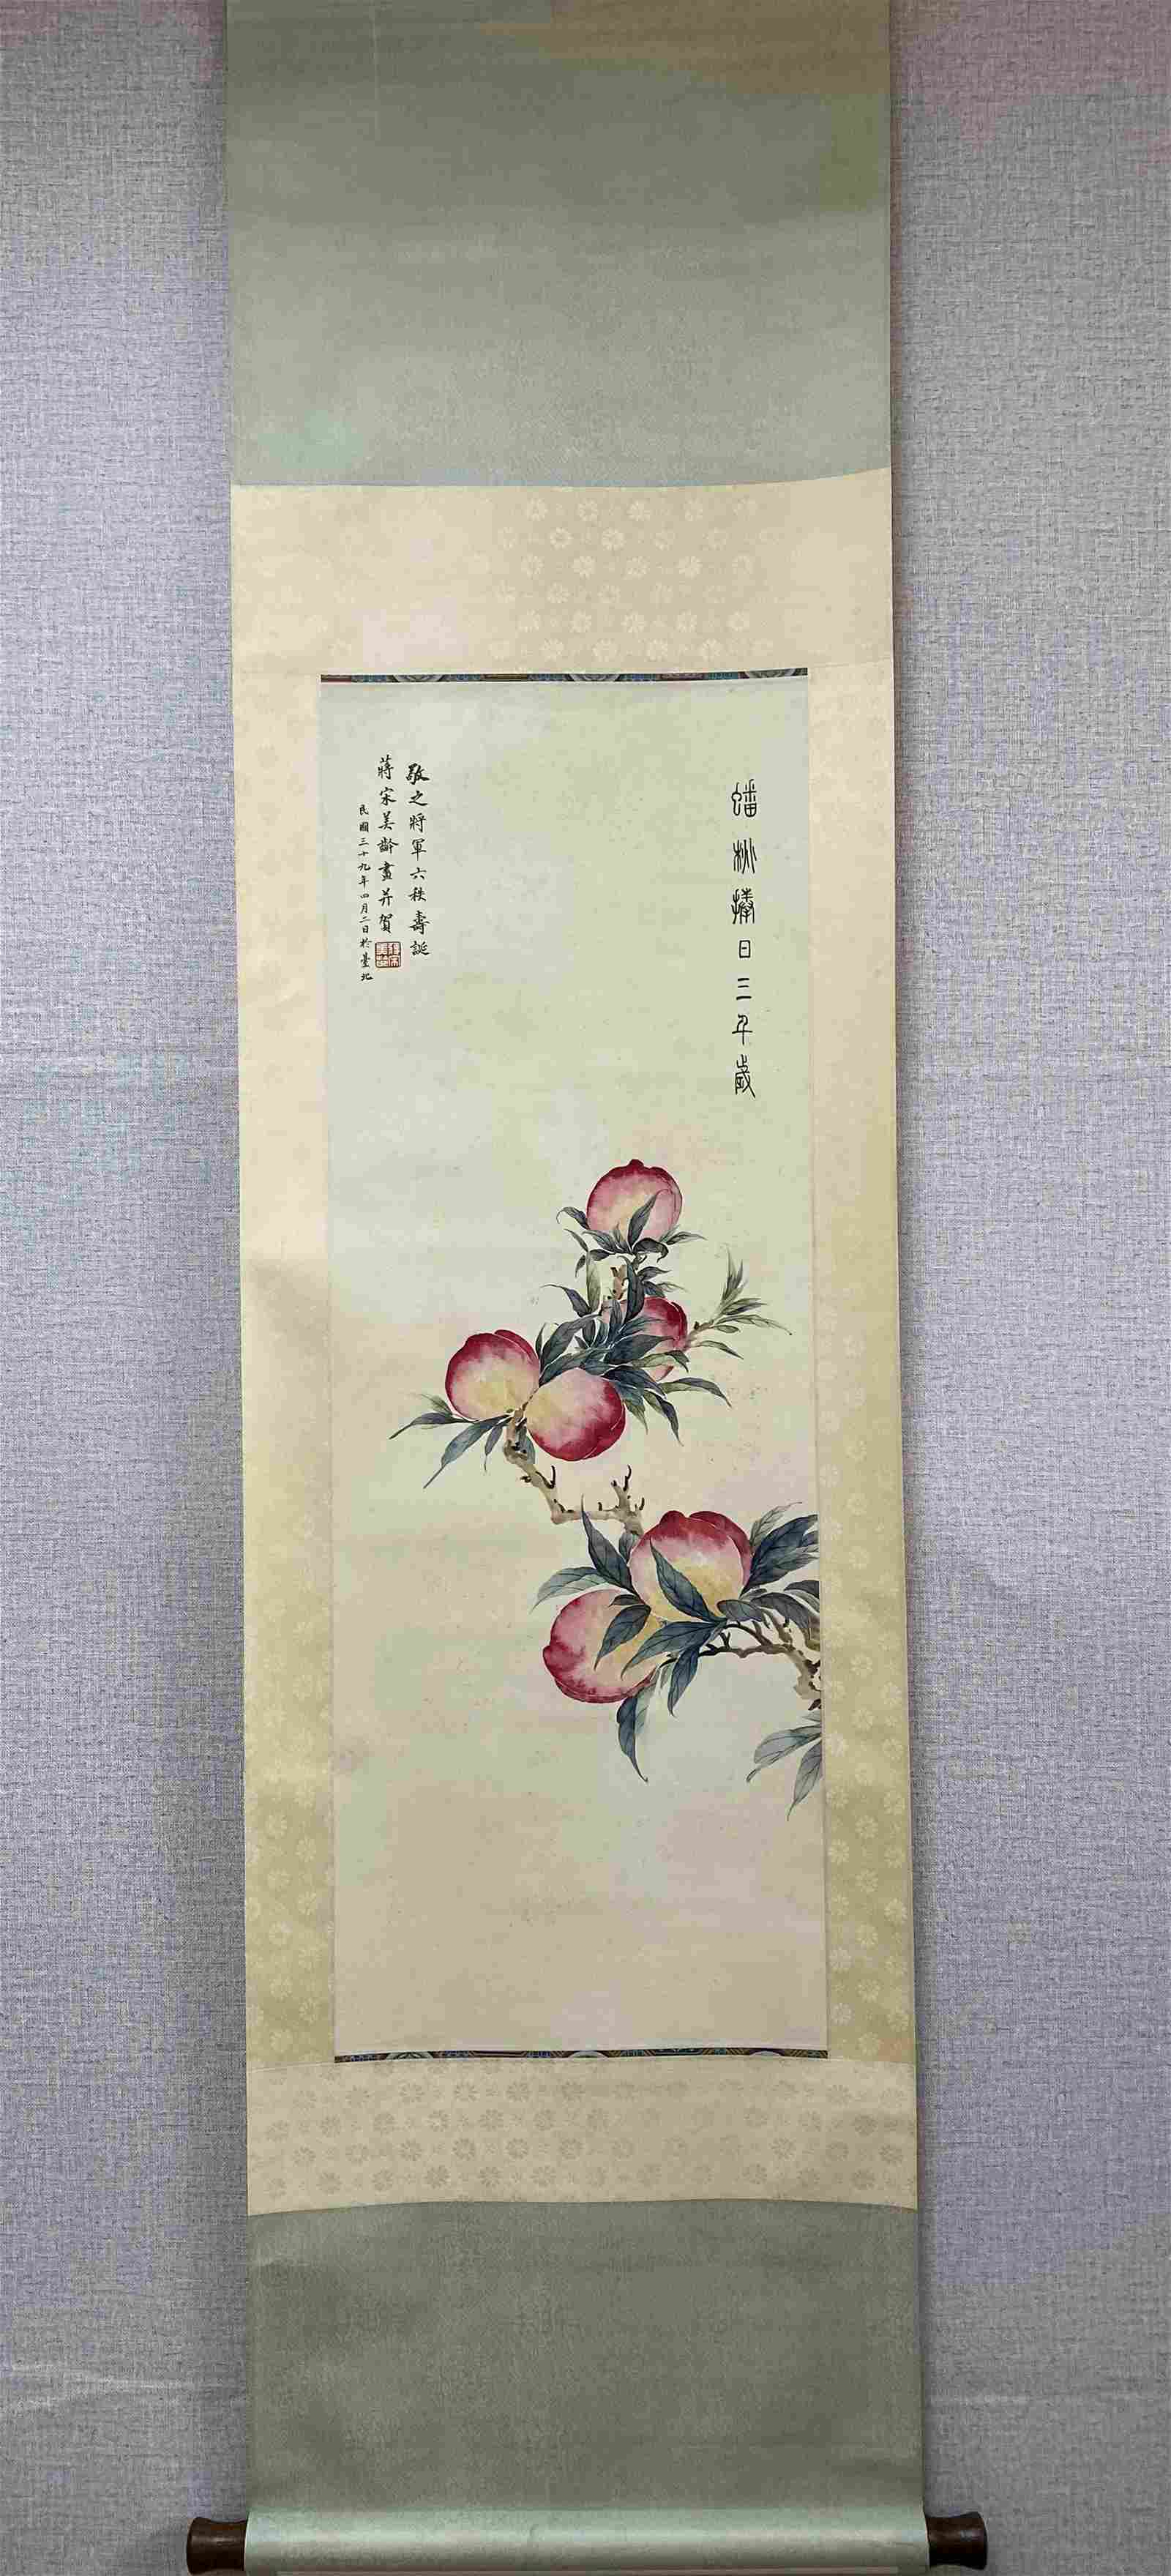 China. A scroll painting by Song Meiling